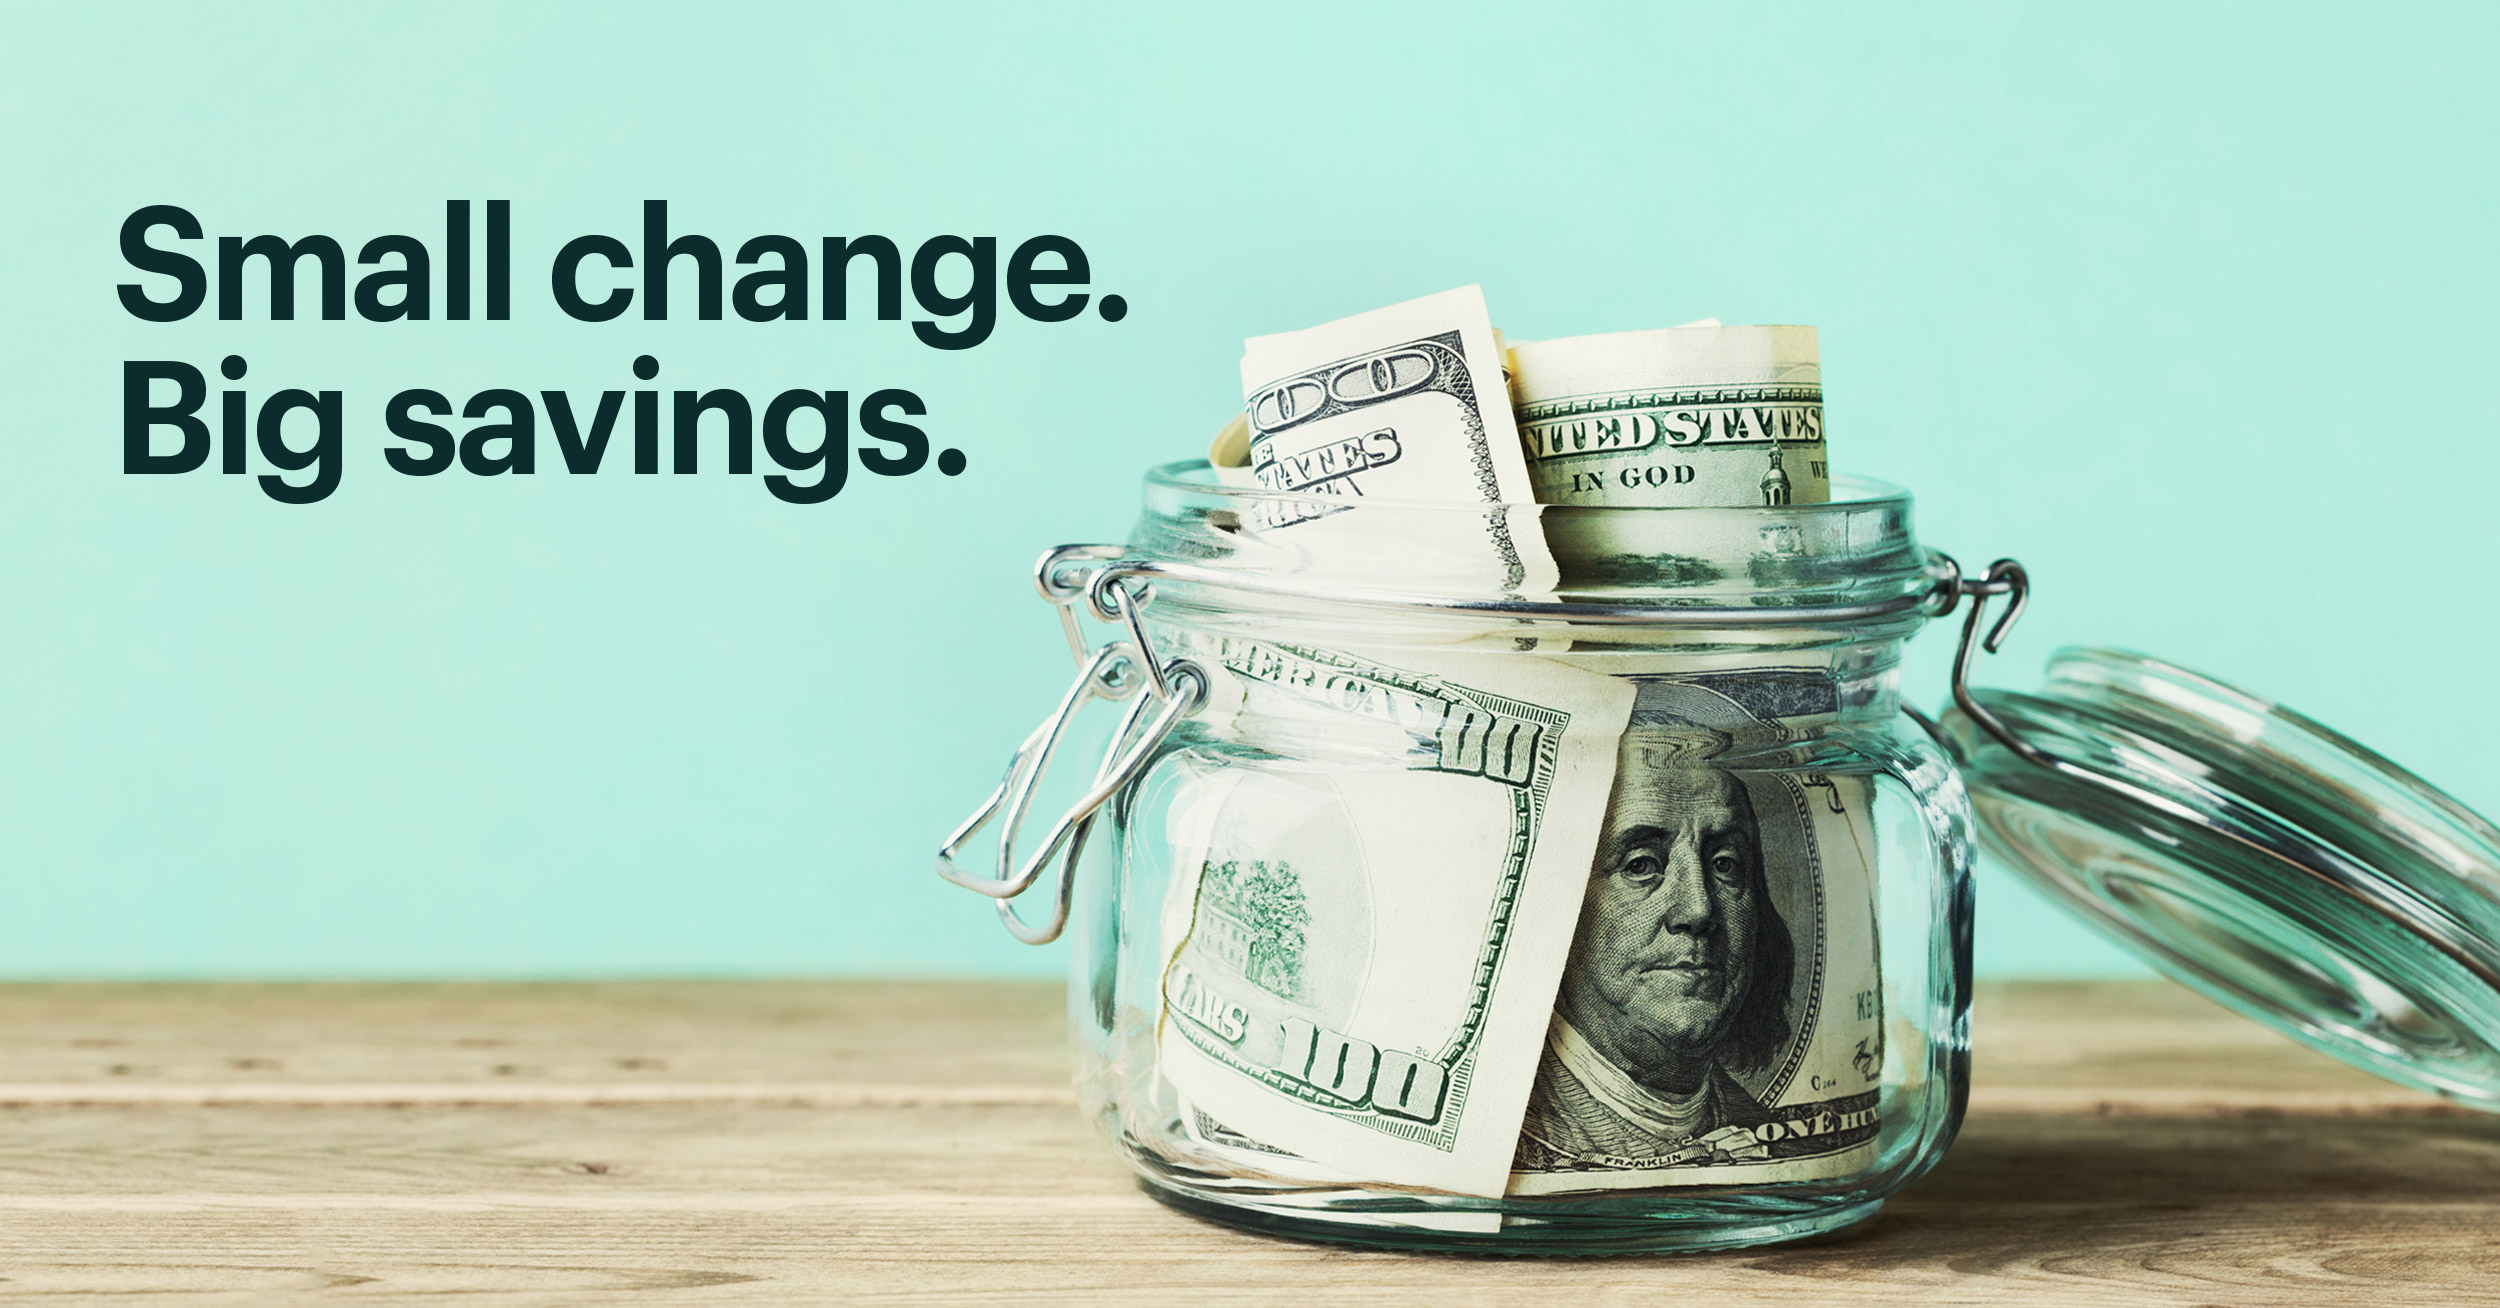 Jar of Money on a Wooden Table with Text That Reads: Small Change. Big Savings